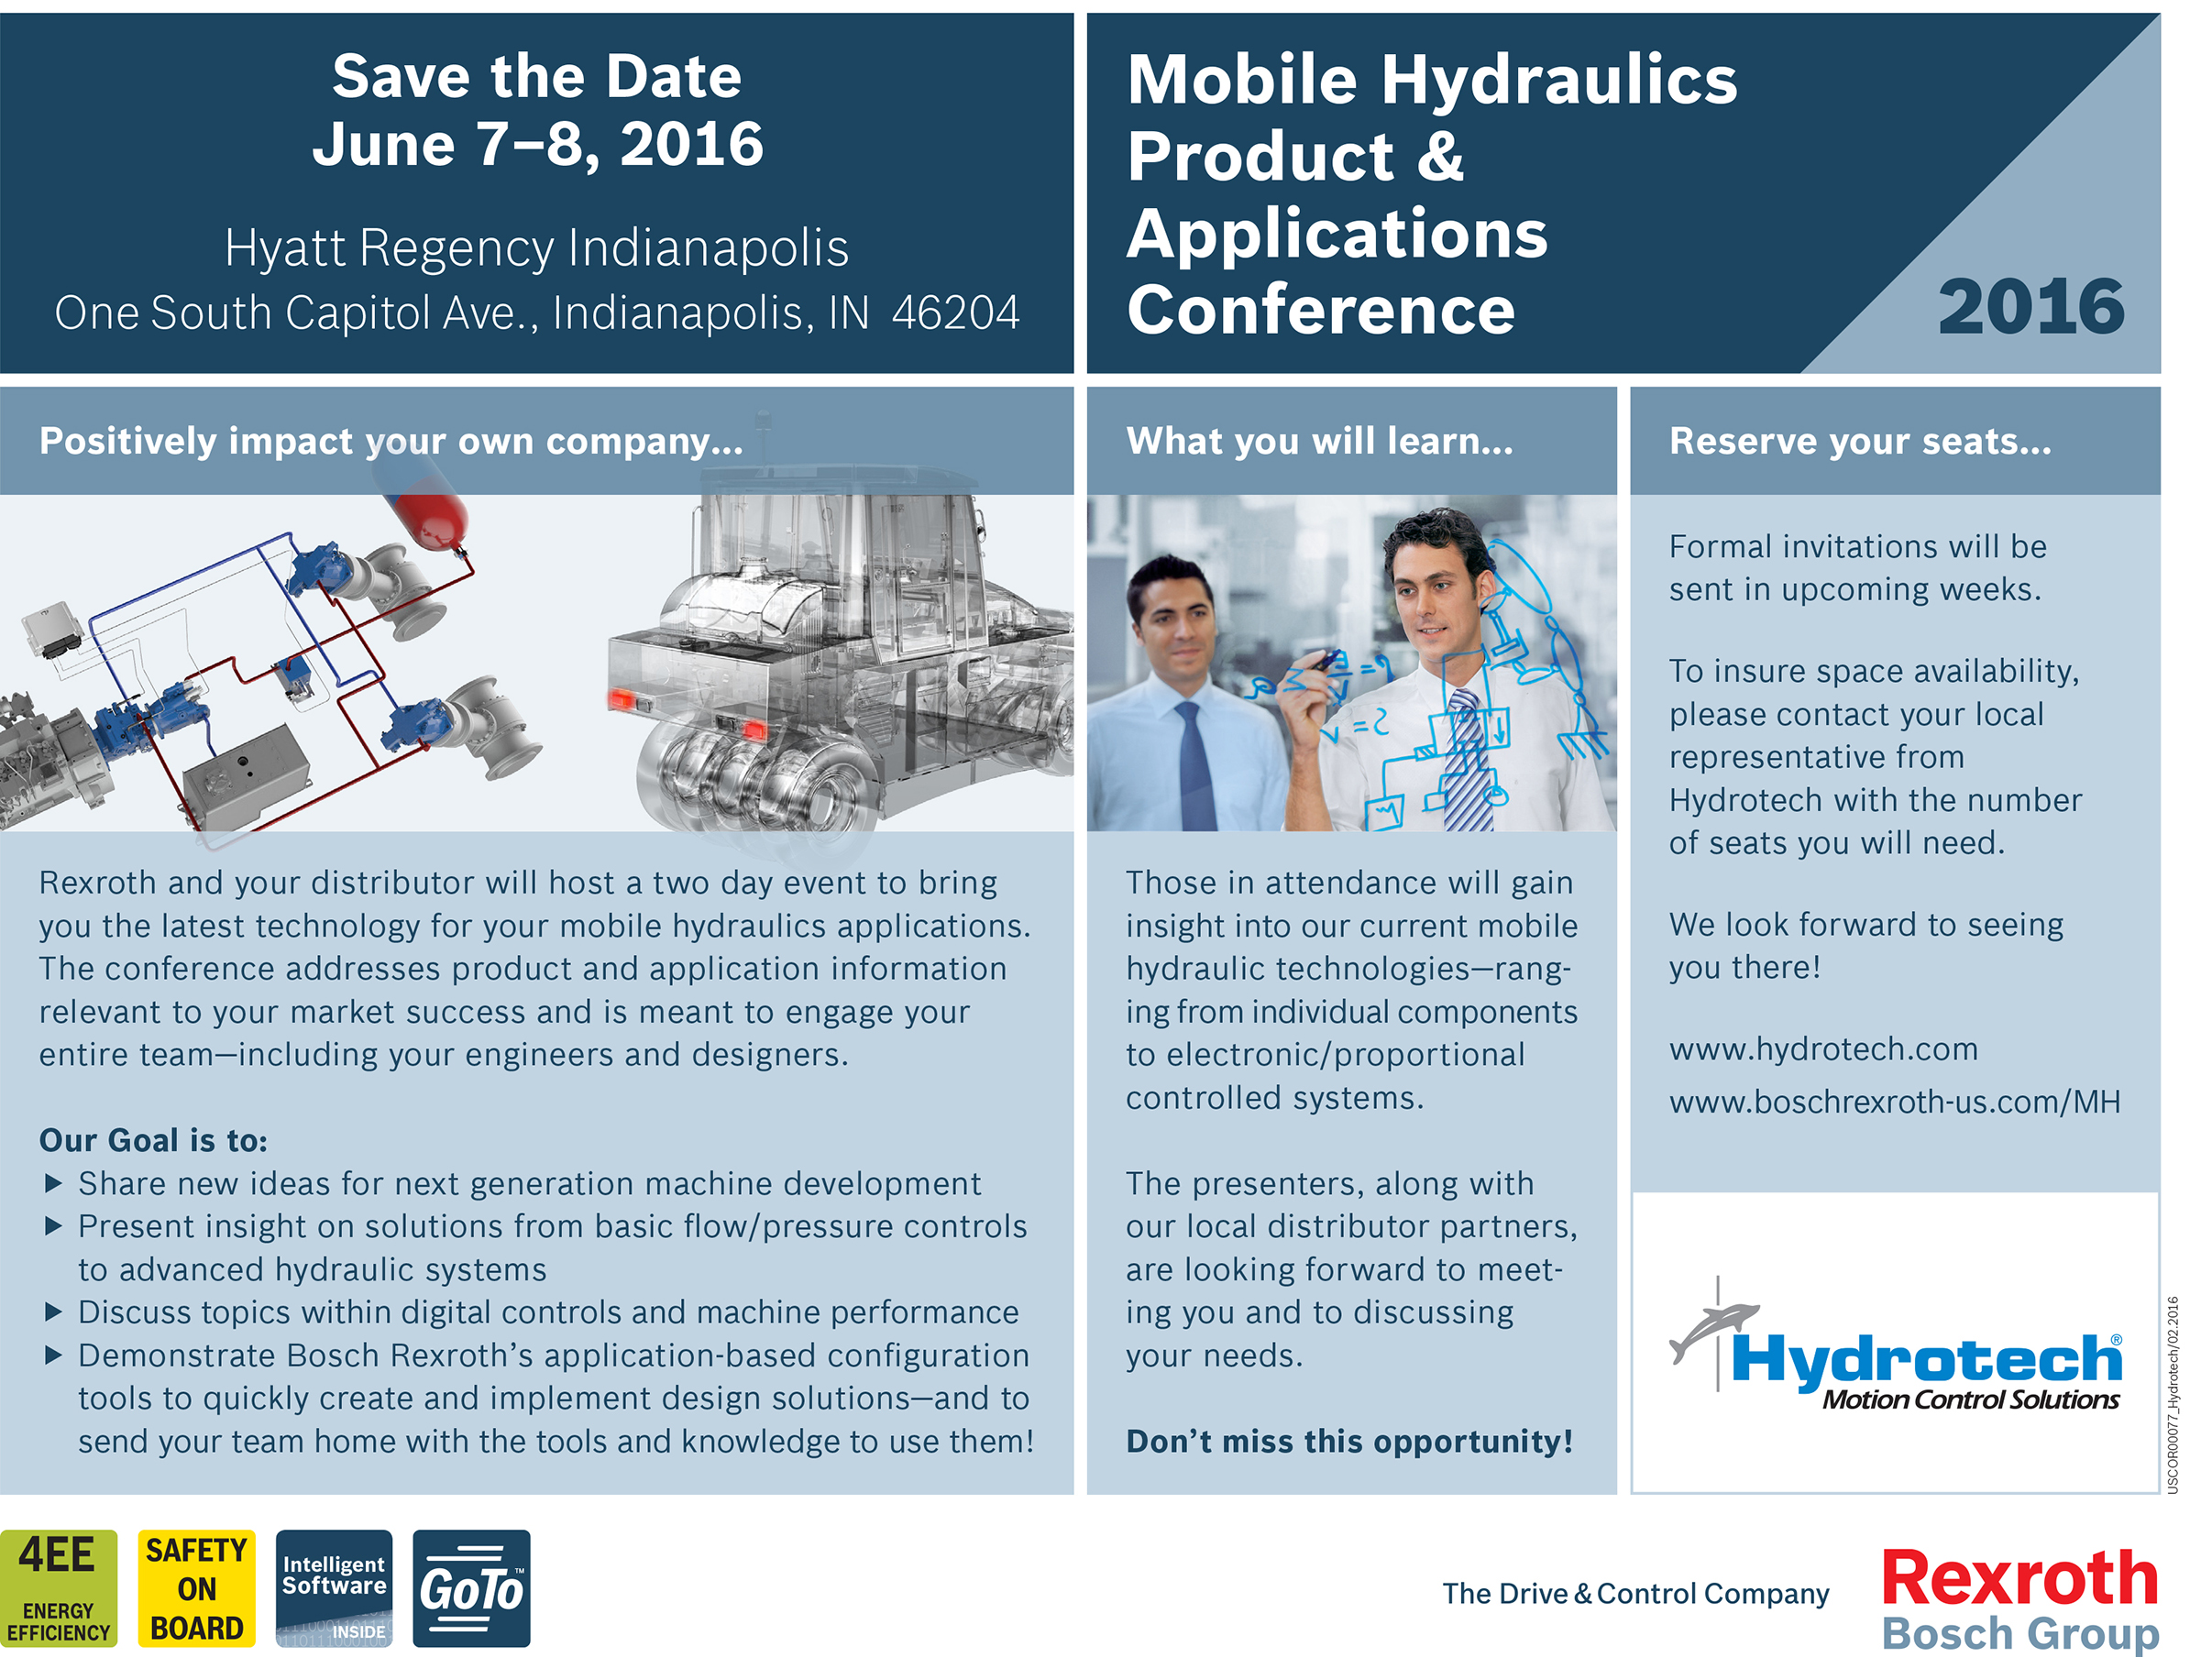 Bosch Rexroth to Host Mobile Hydraulics Product & Applications